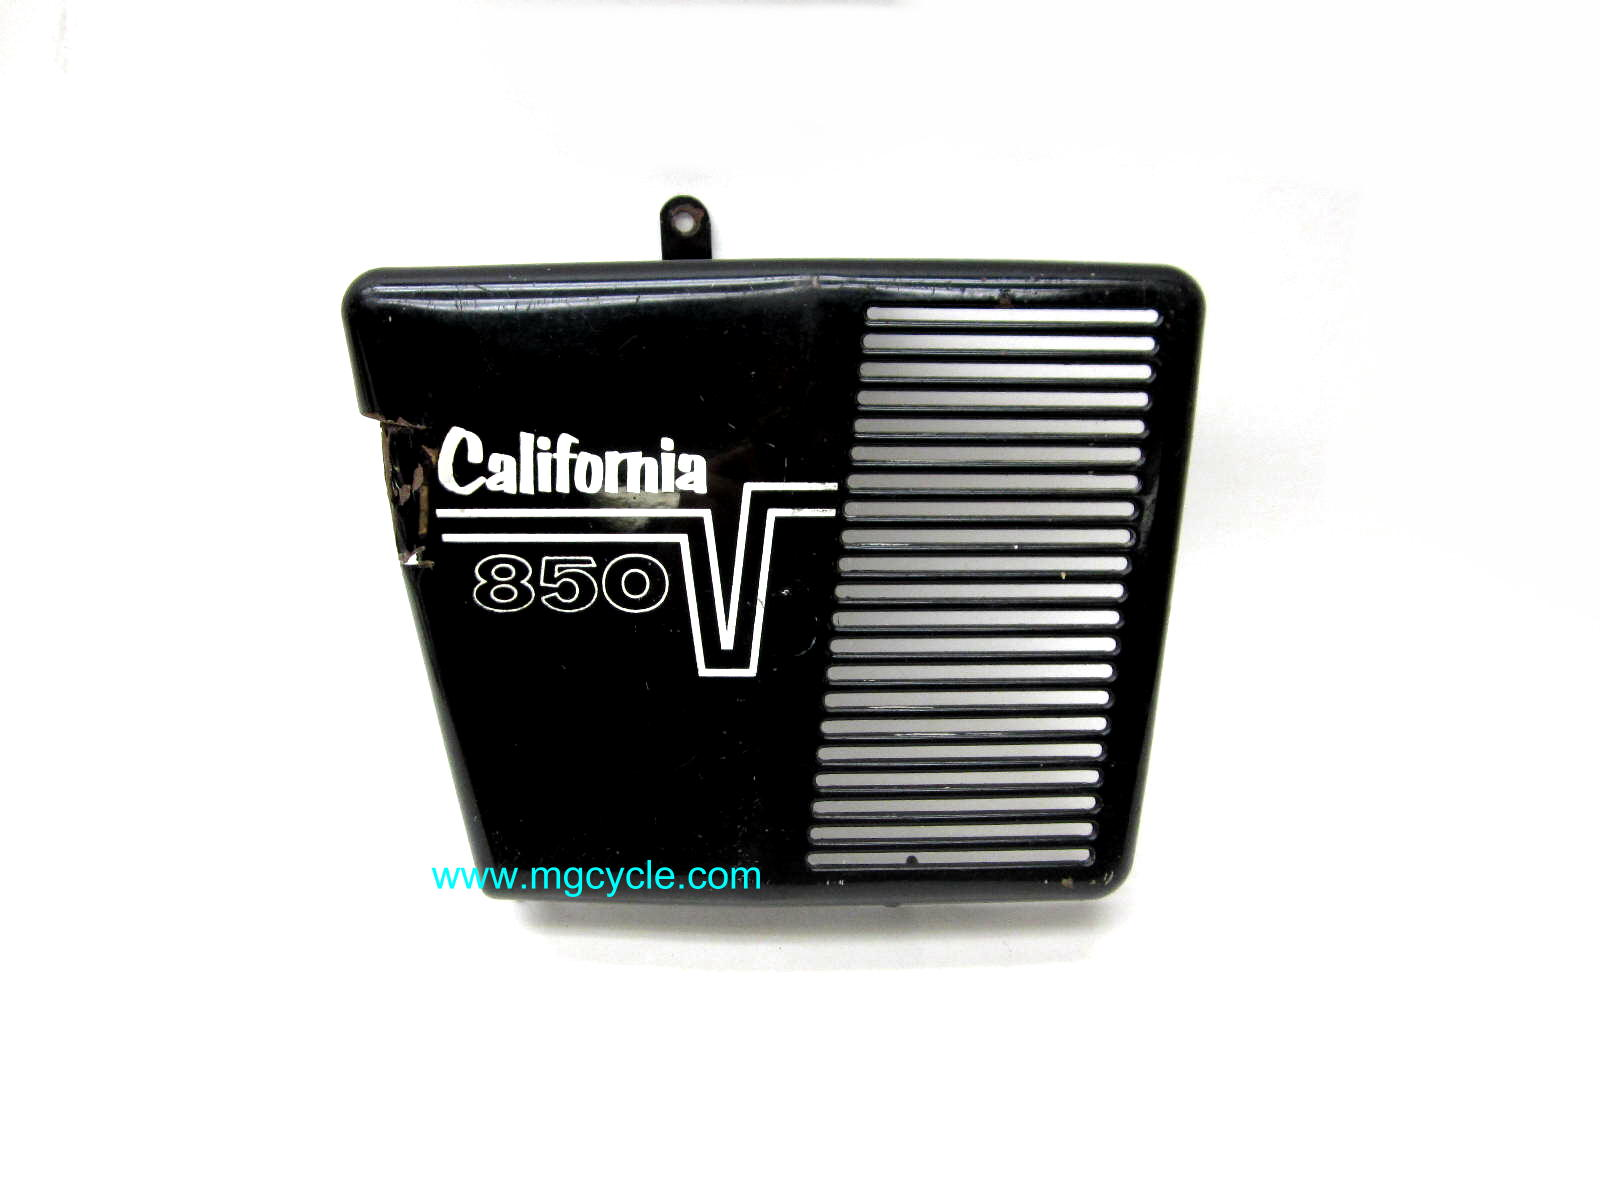 USED: 850 California right side battery cover, cut